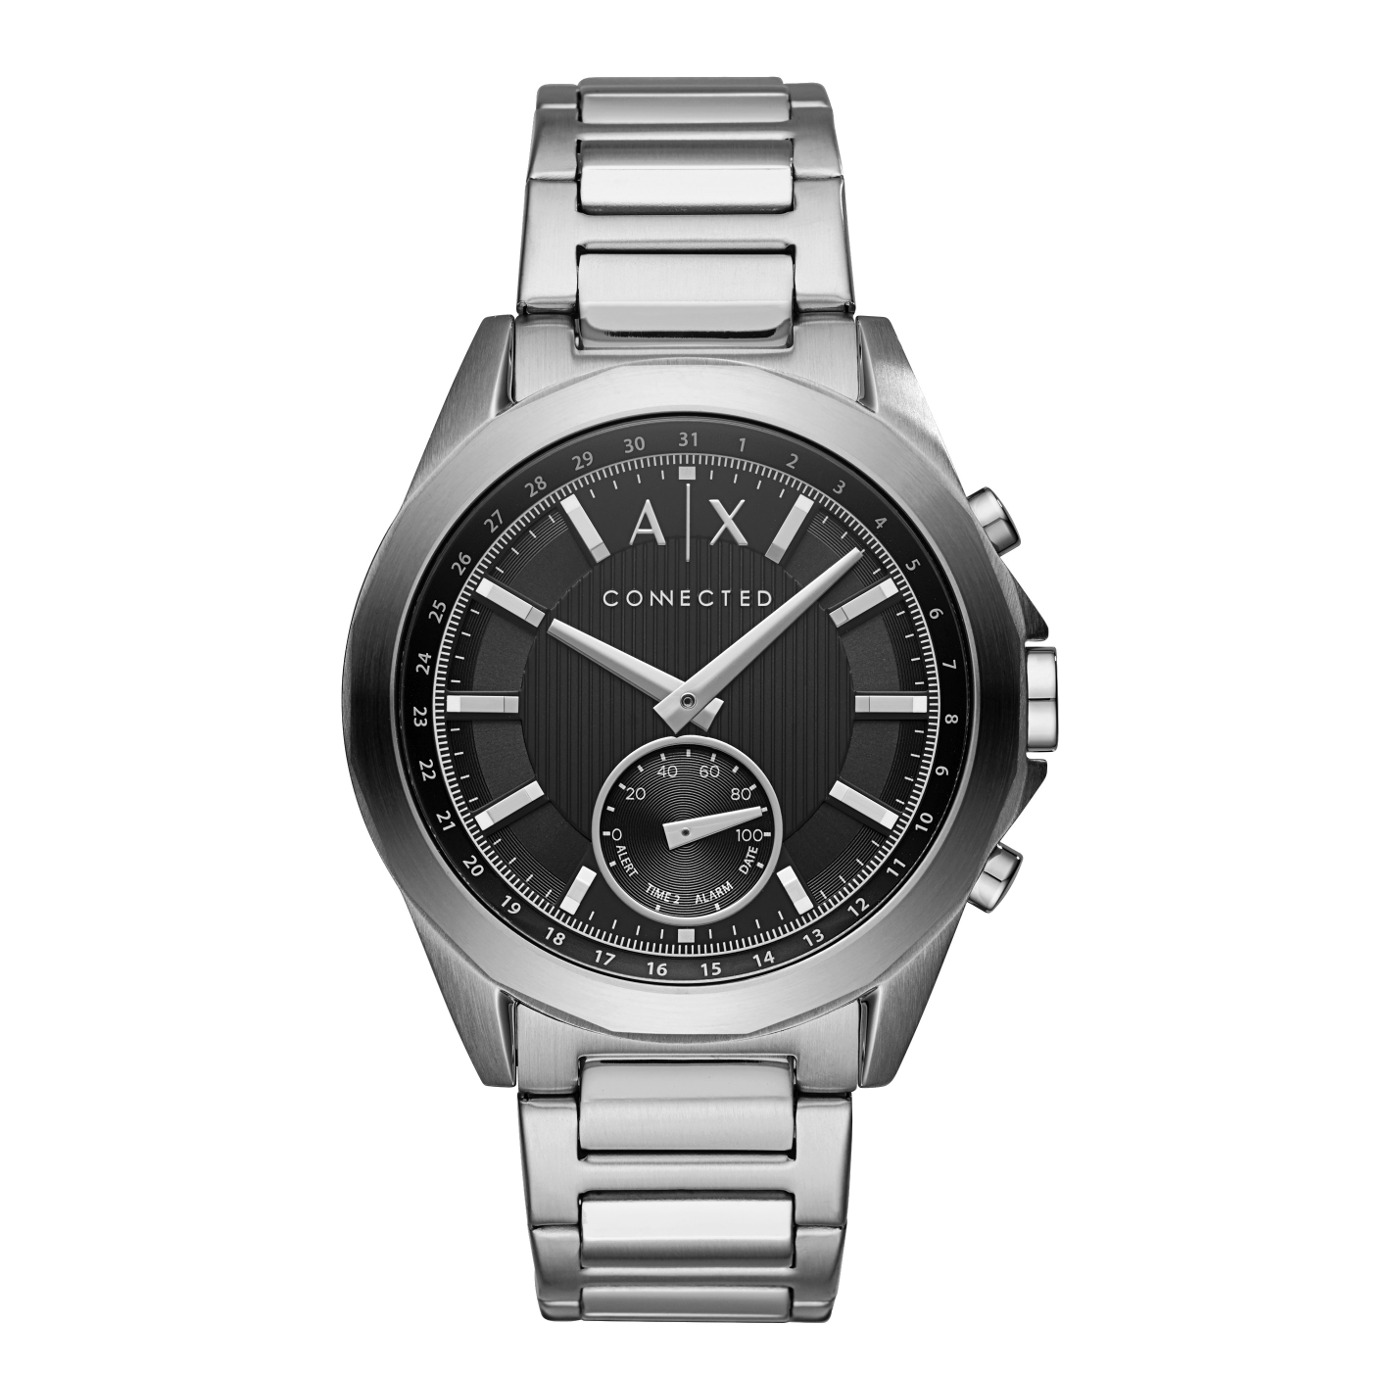 Bilde av Armani Exchange Connected watch AXT1006